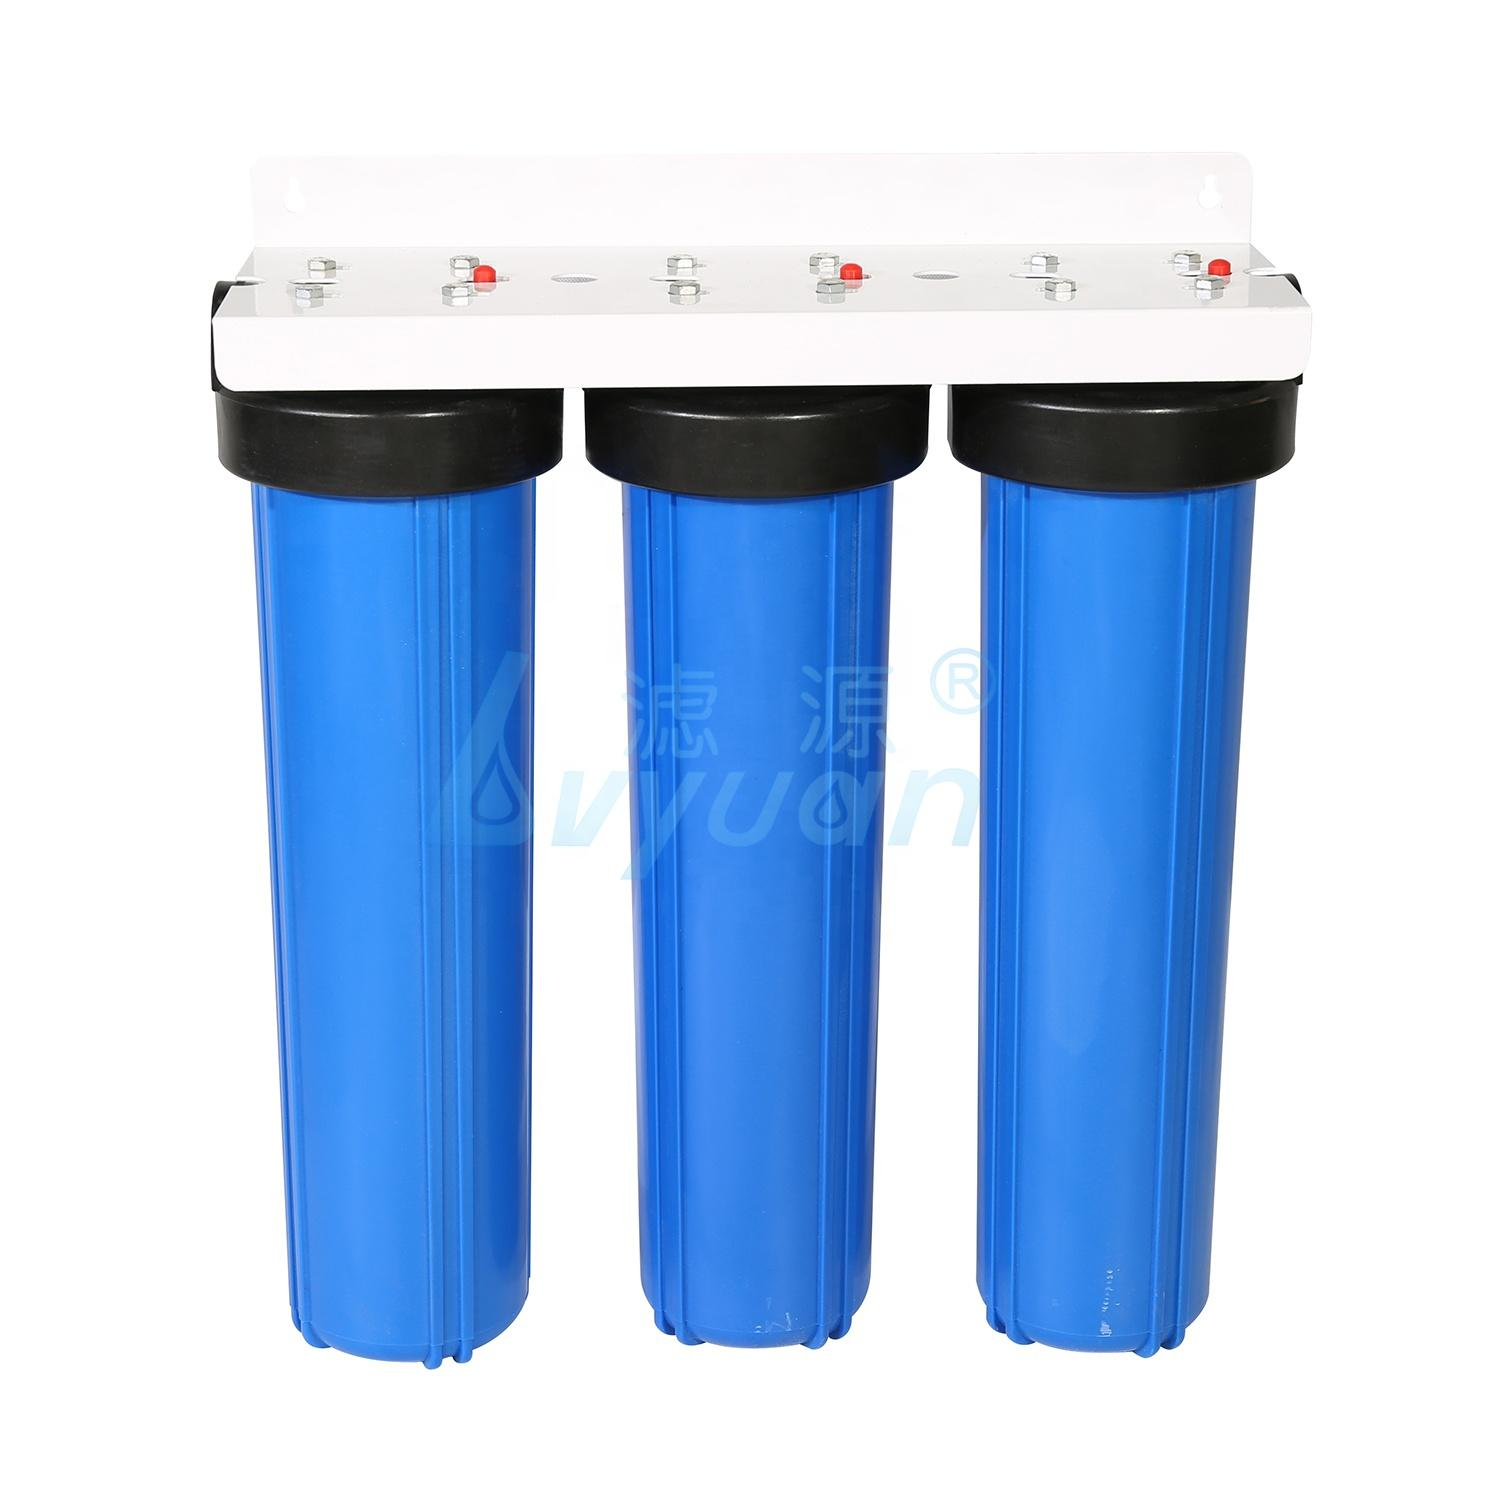 water system filter big blue water filter housing 10 inch water filter for pre filtration